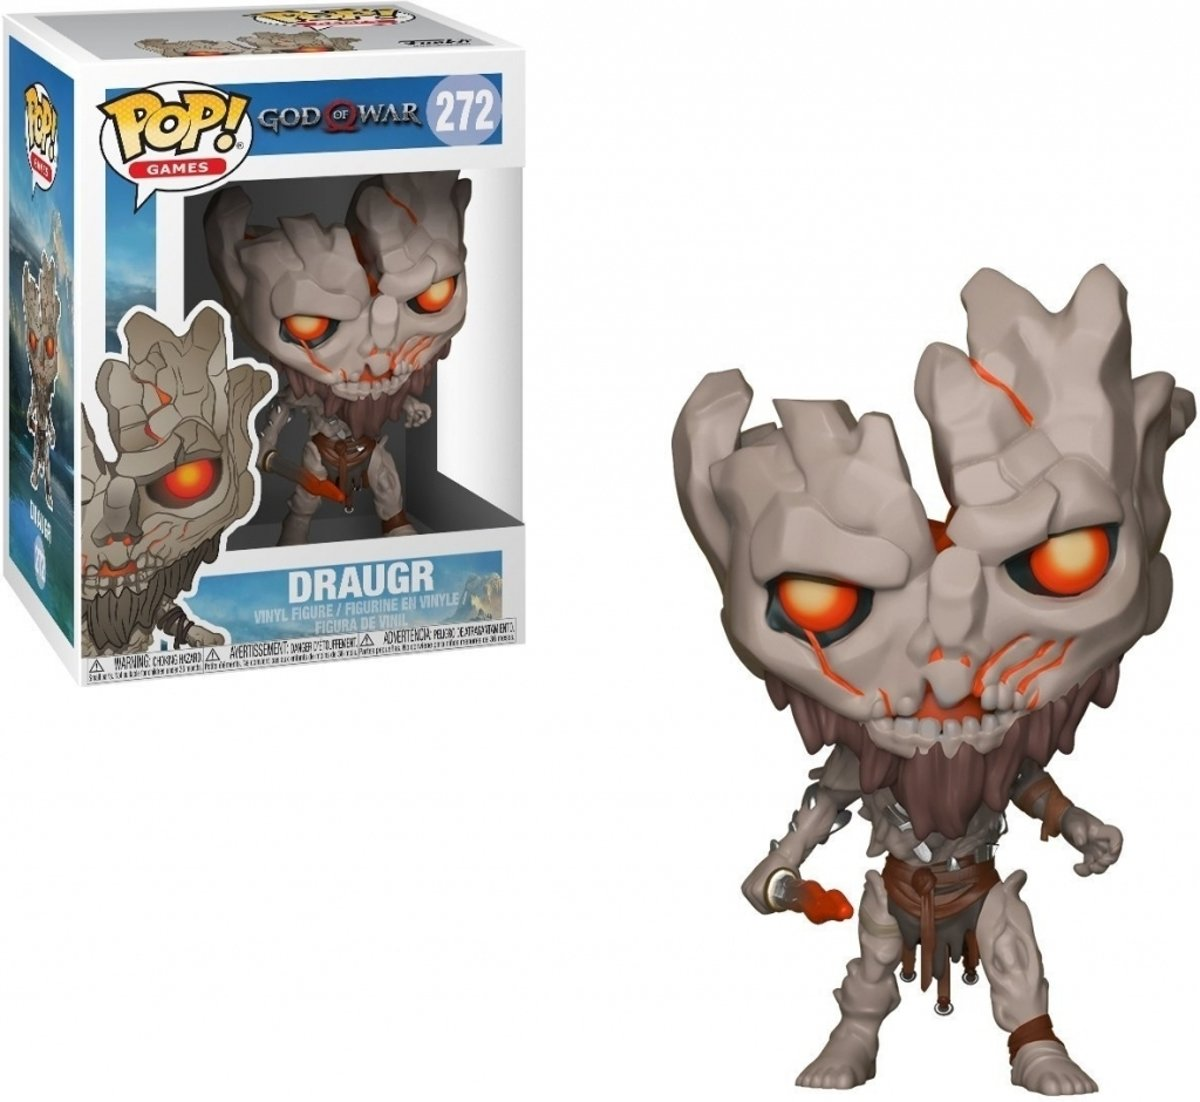 Pop God of War Draugr Vinyl Figure